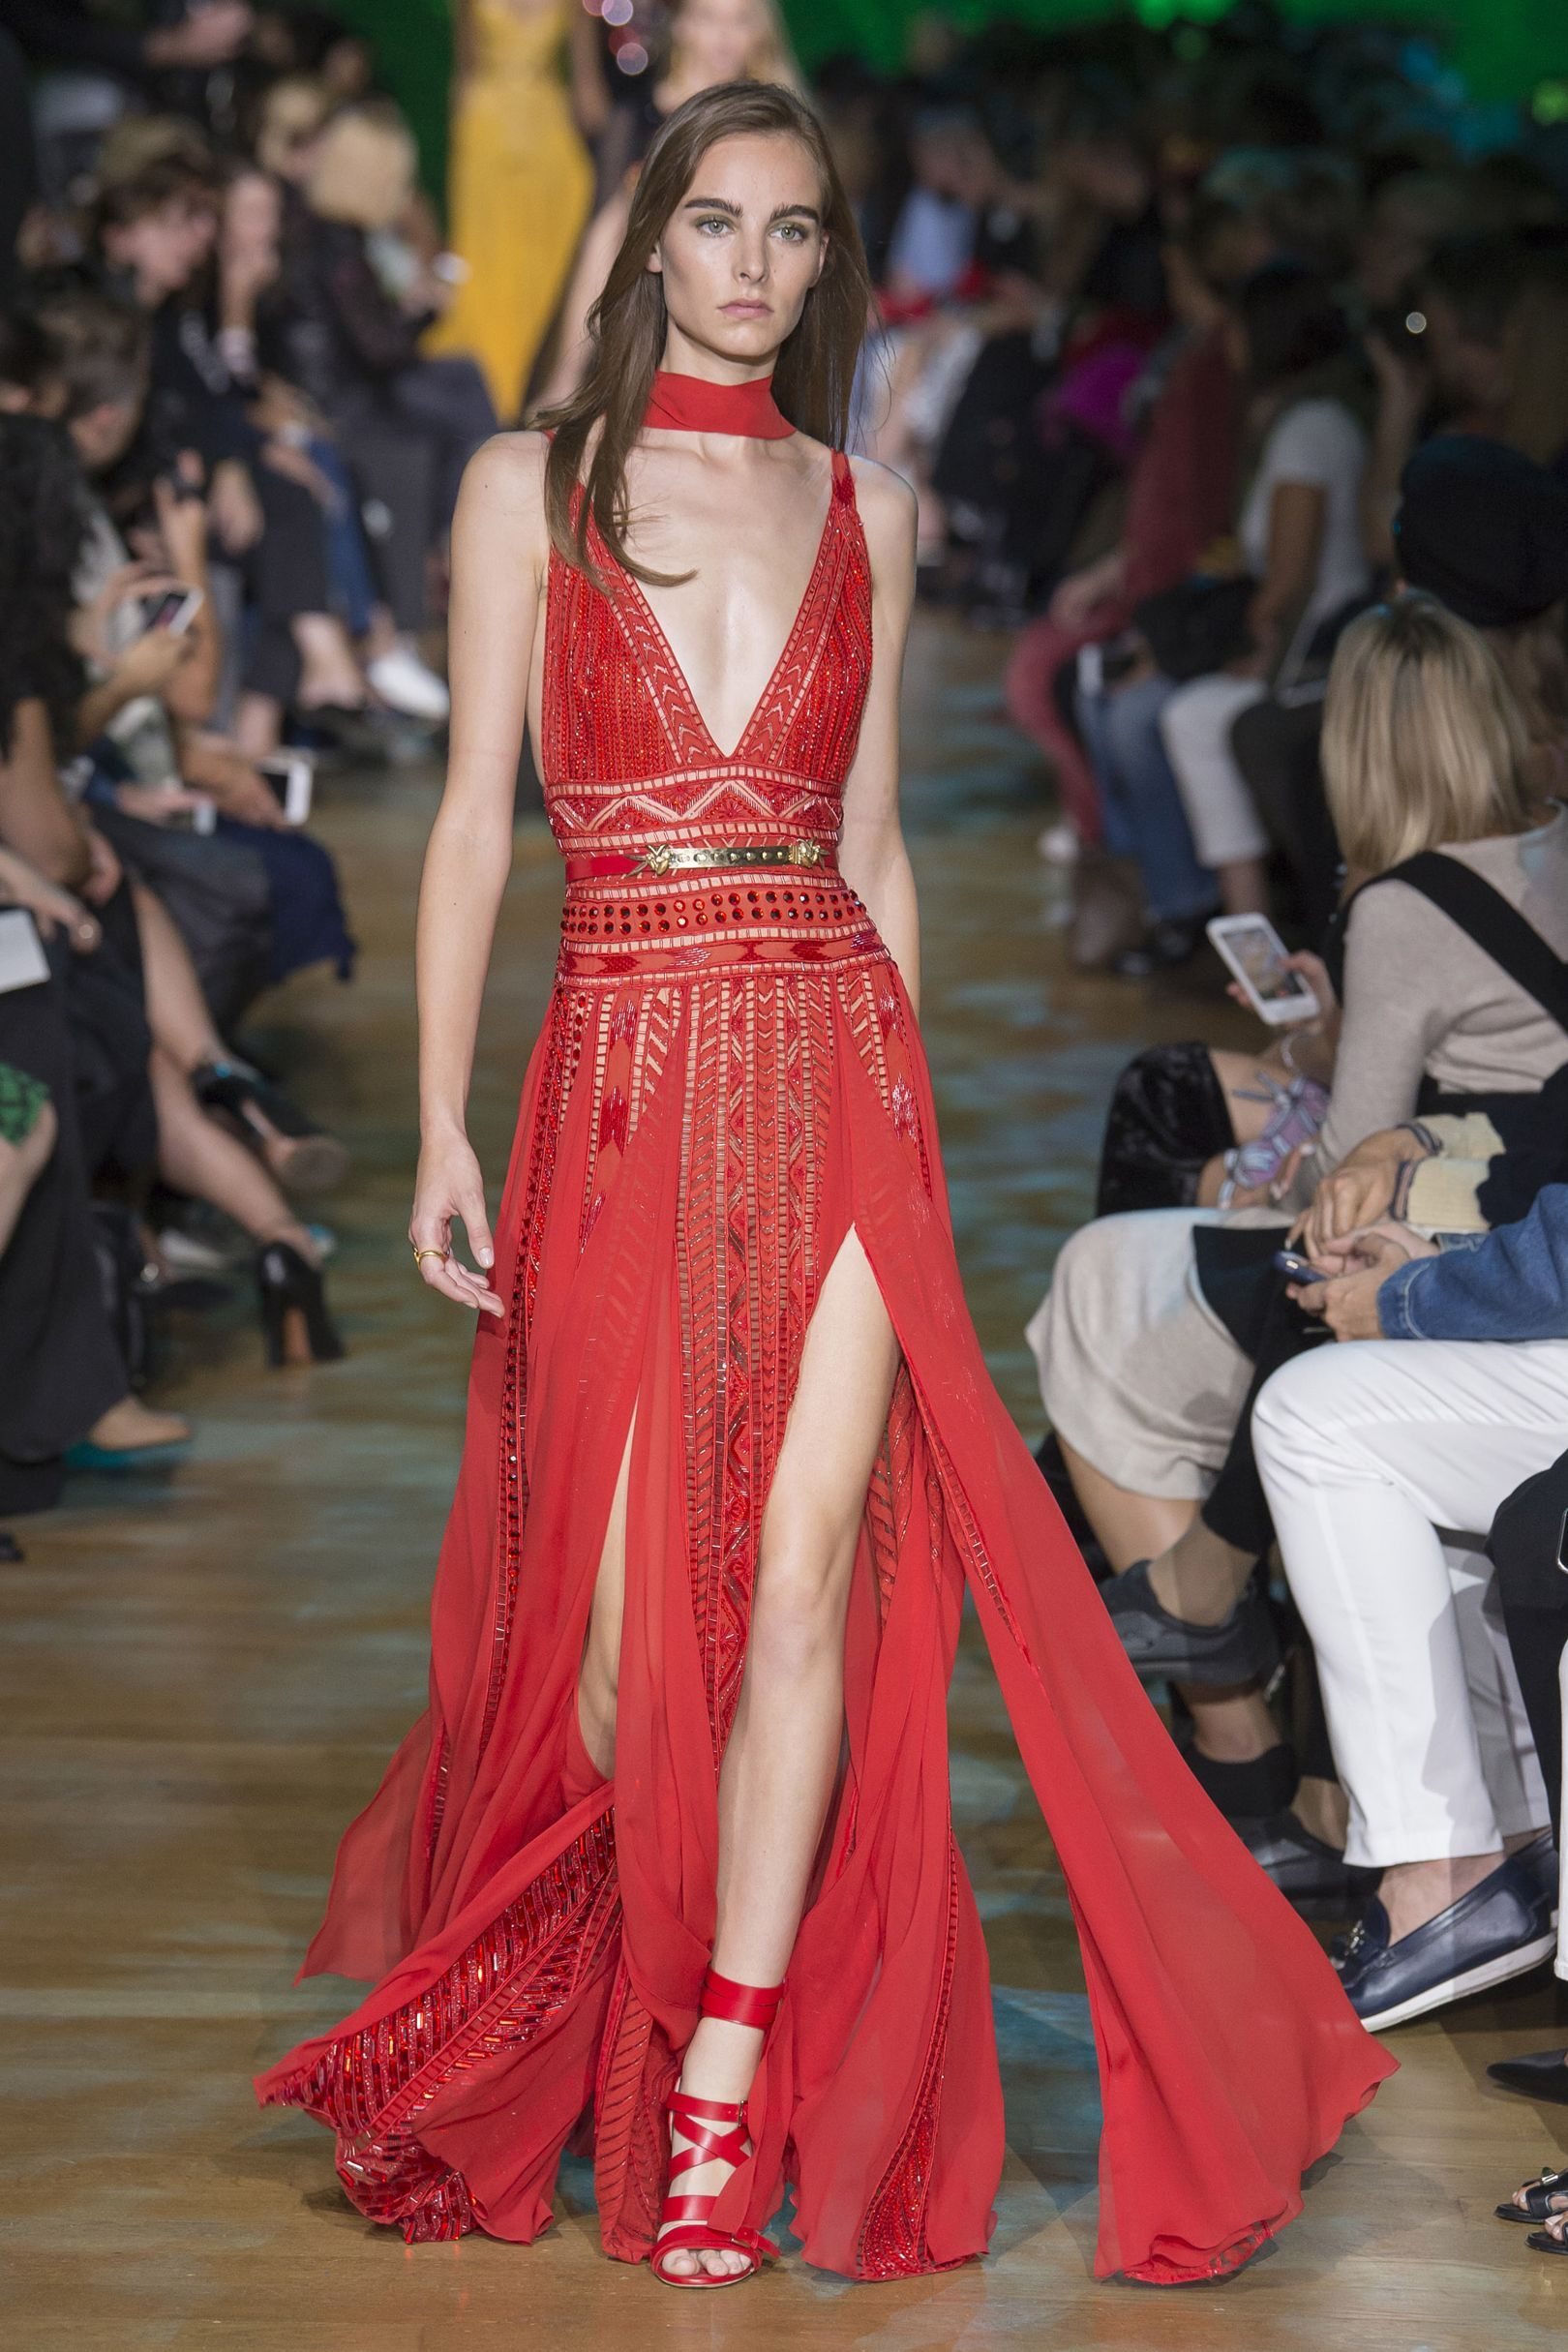 Elie Saab Spring/Summer 2018 Ready To Wear | Elie Saab ...